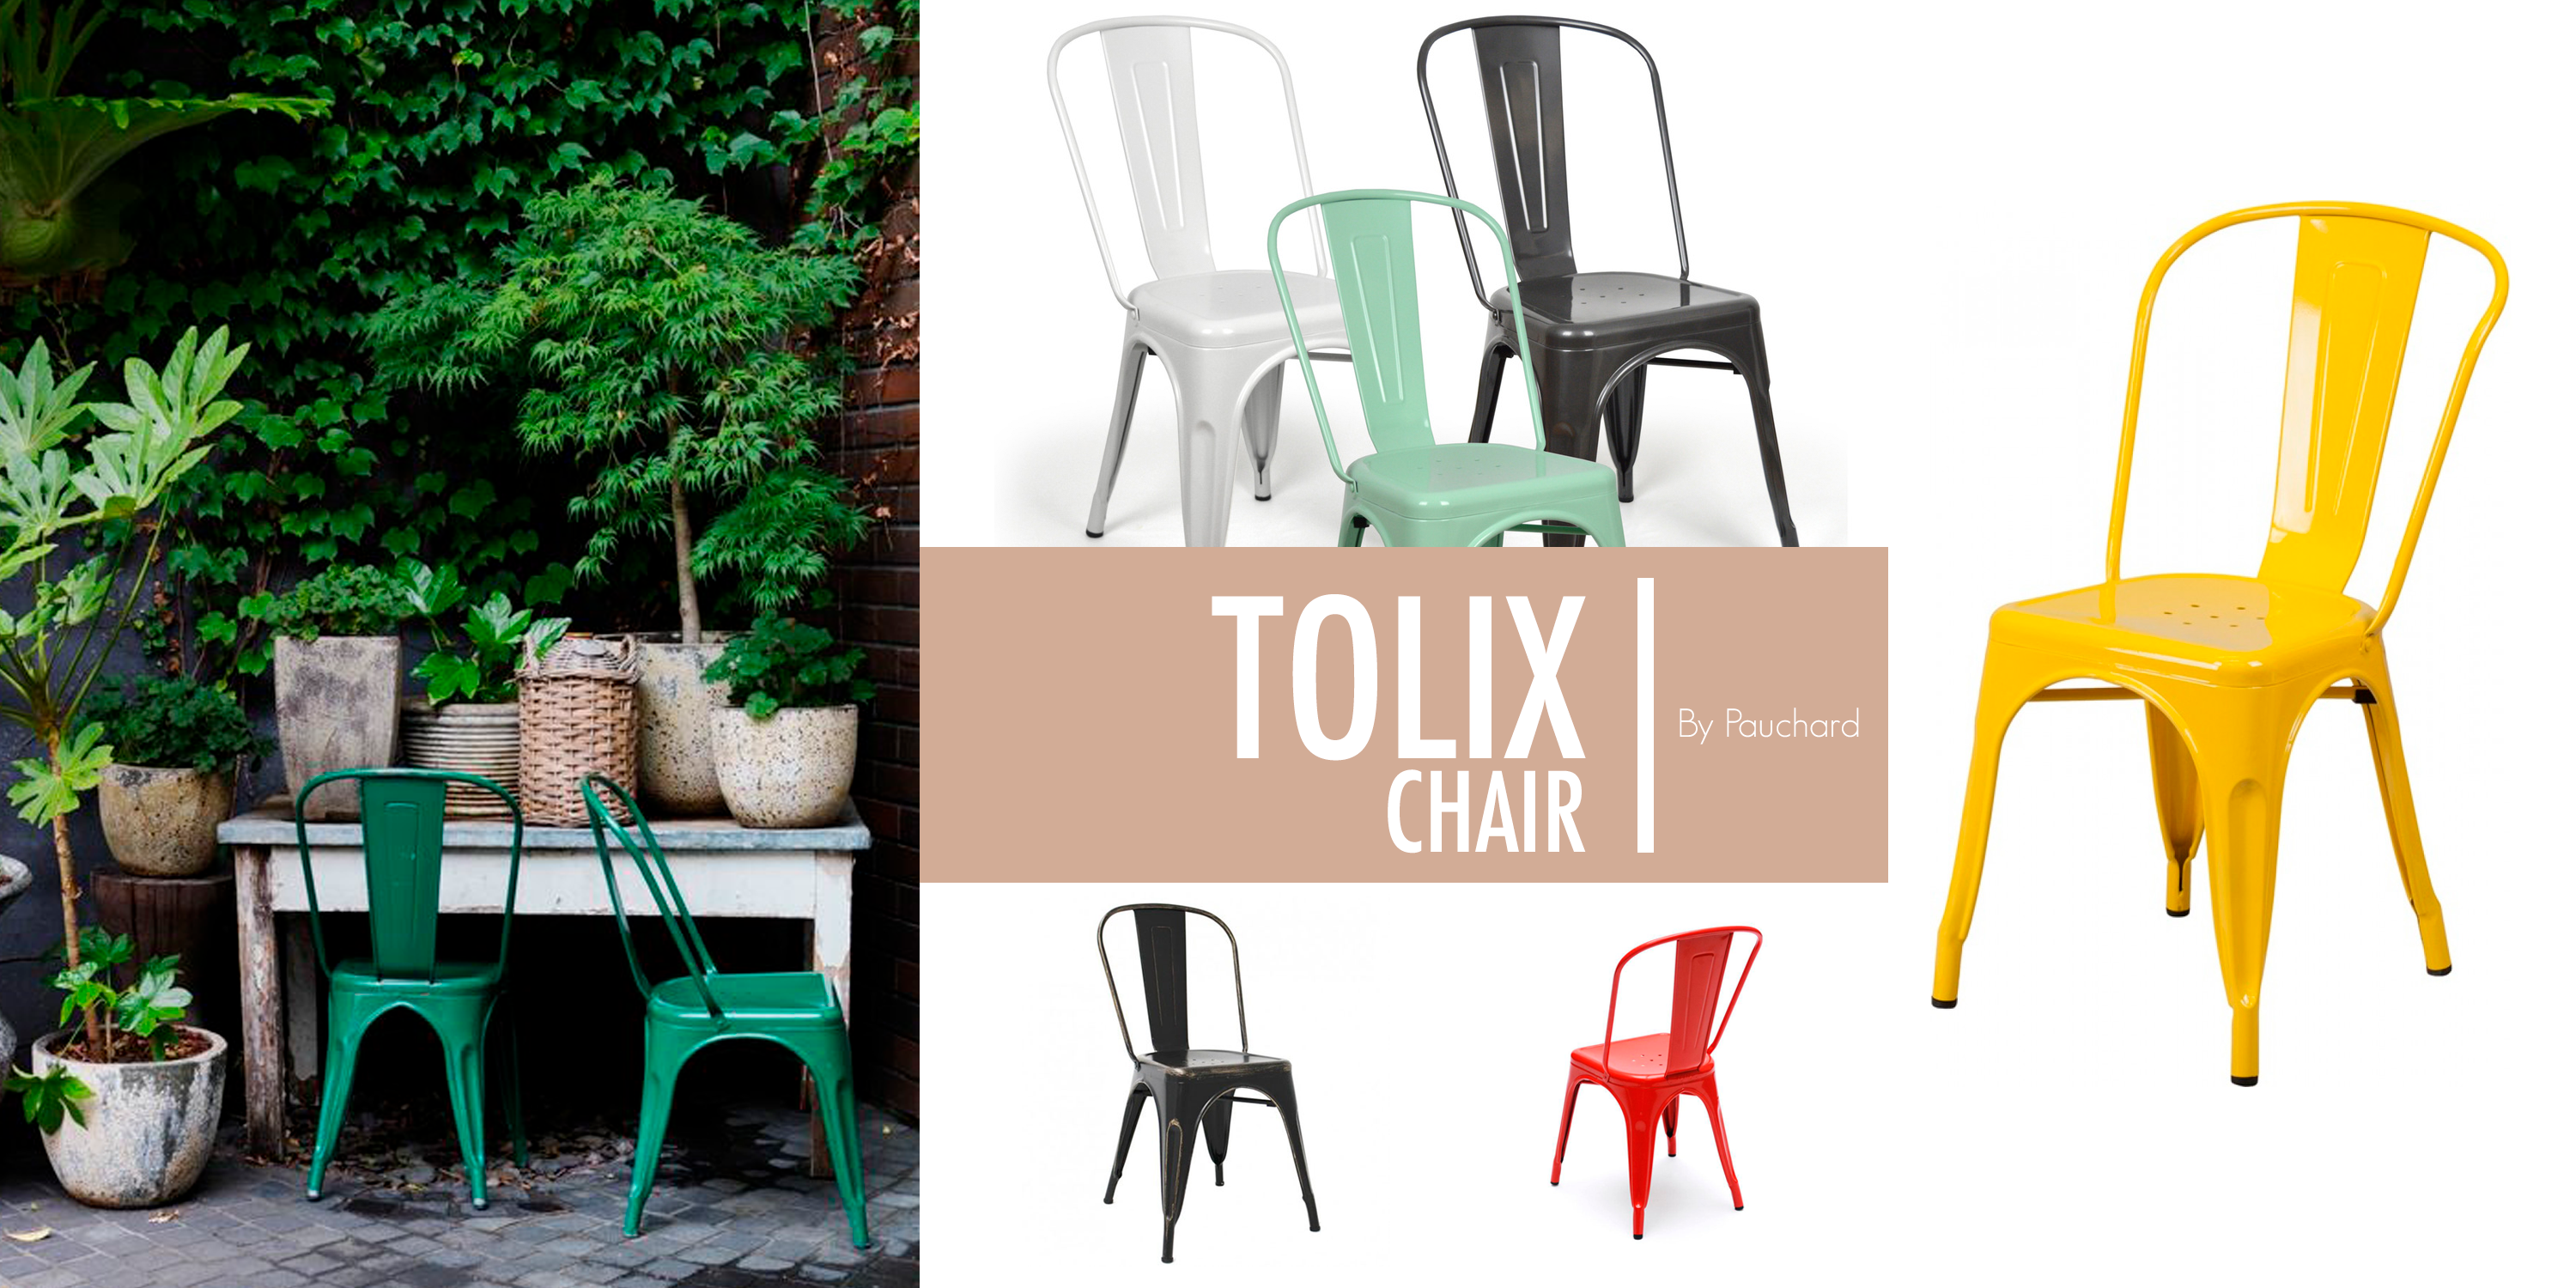 ``Tolix Chair`` by Pauchard